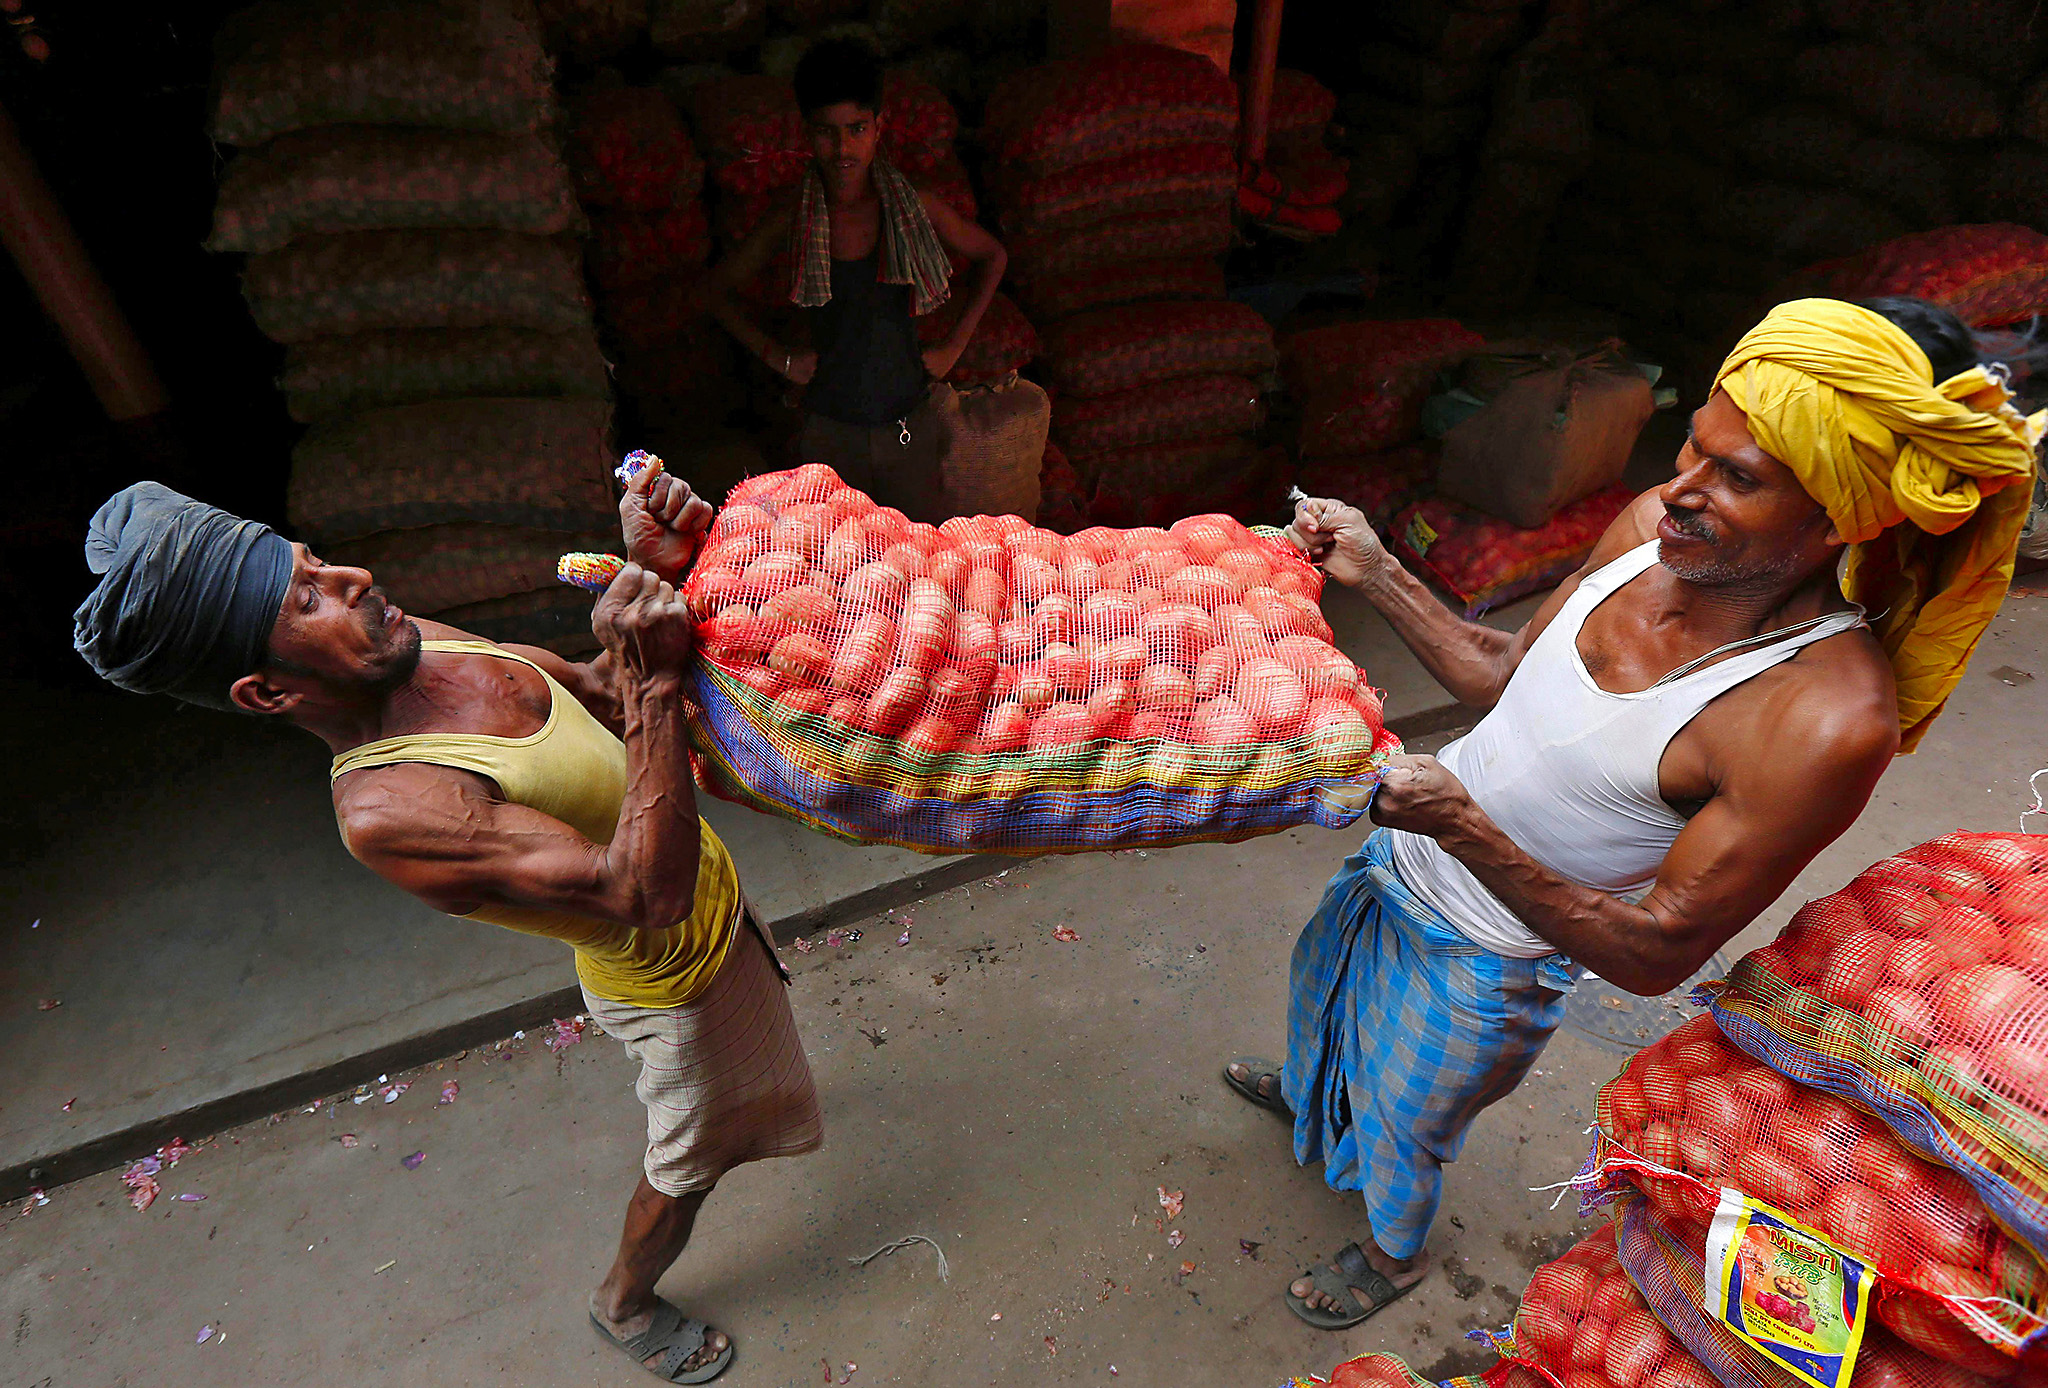 Labourers lift a sack of potatoes to load onto a supply truck at a wholesale market in Kolkata, India, October 14, 2016. REUTERS/Rupak De Chowdhuri